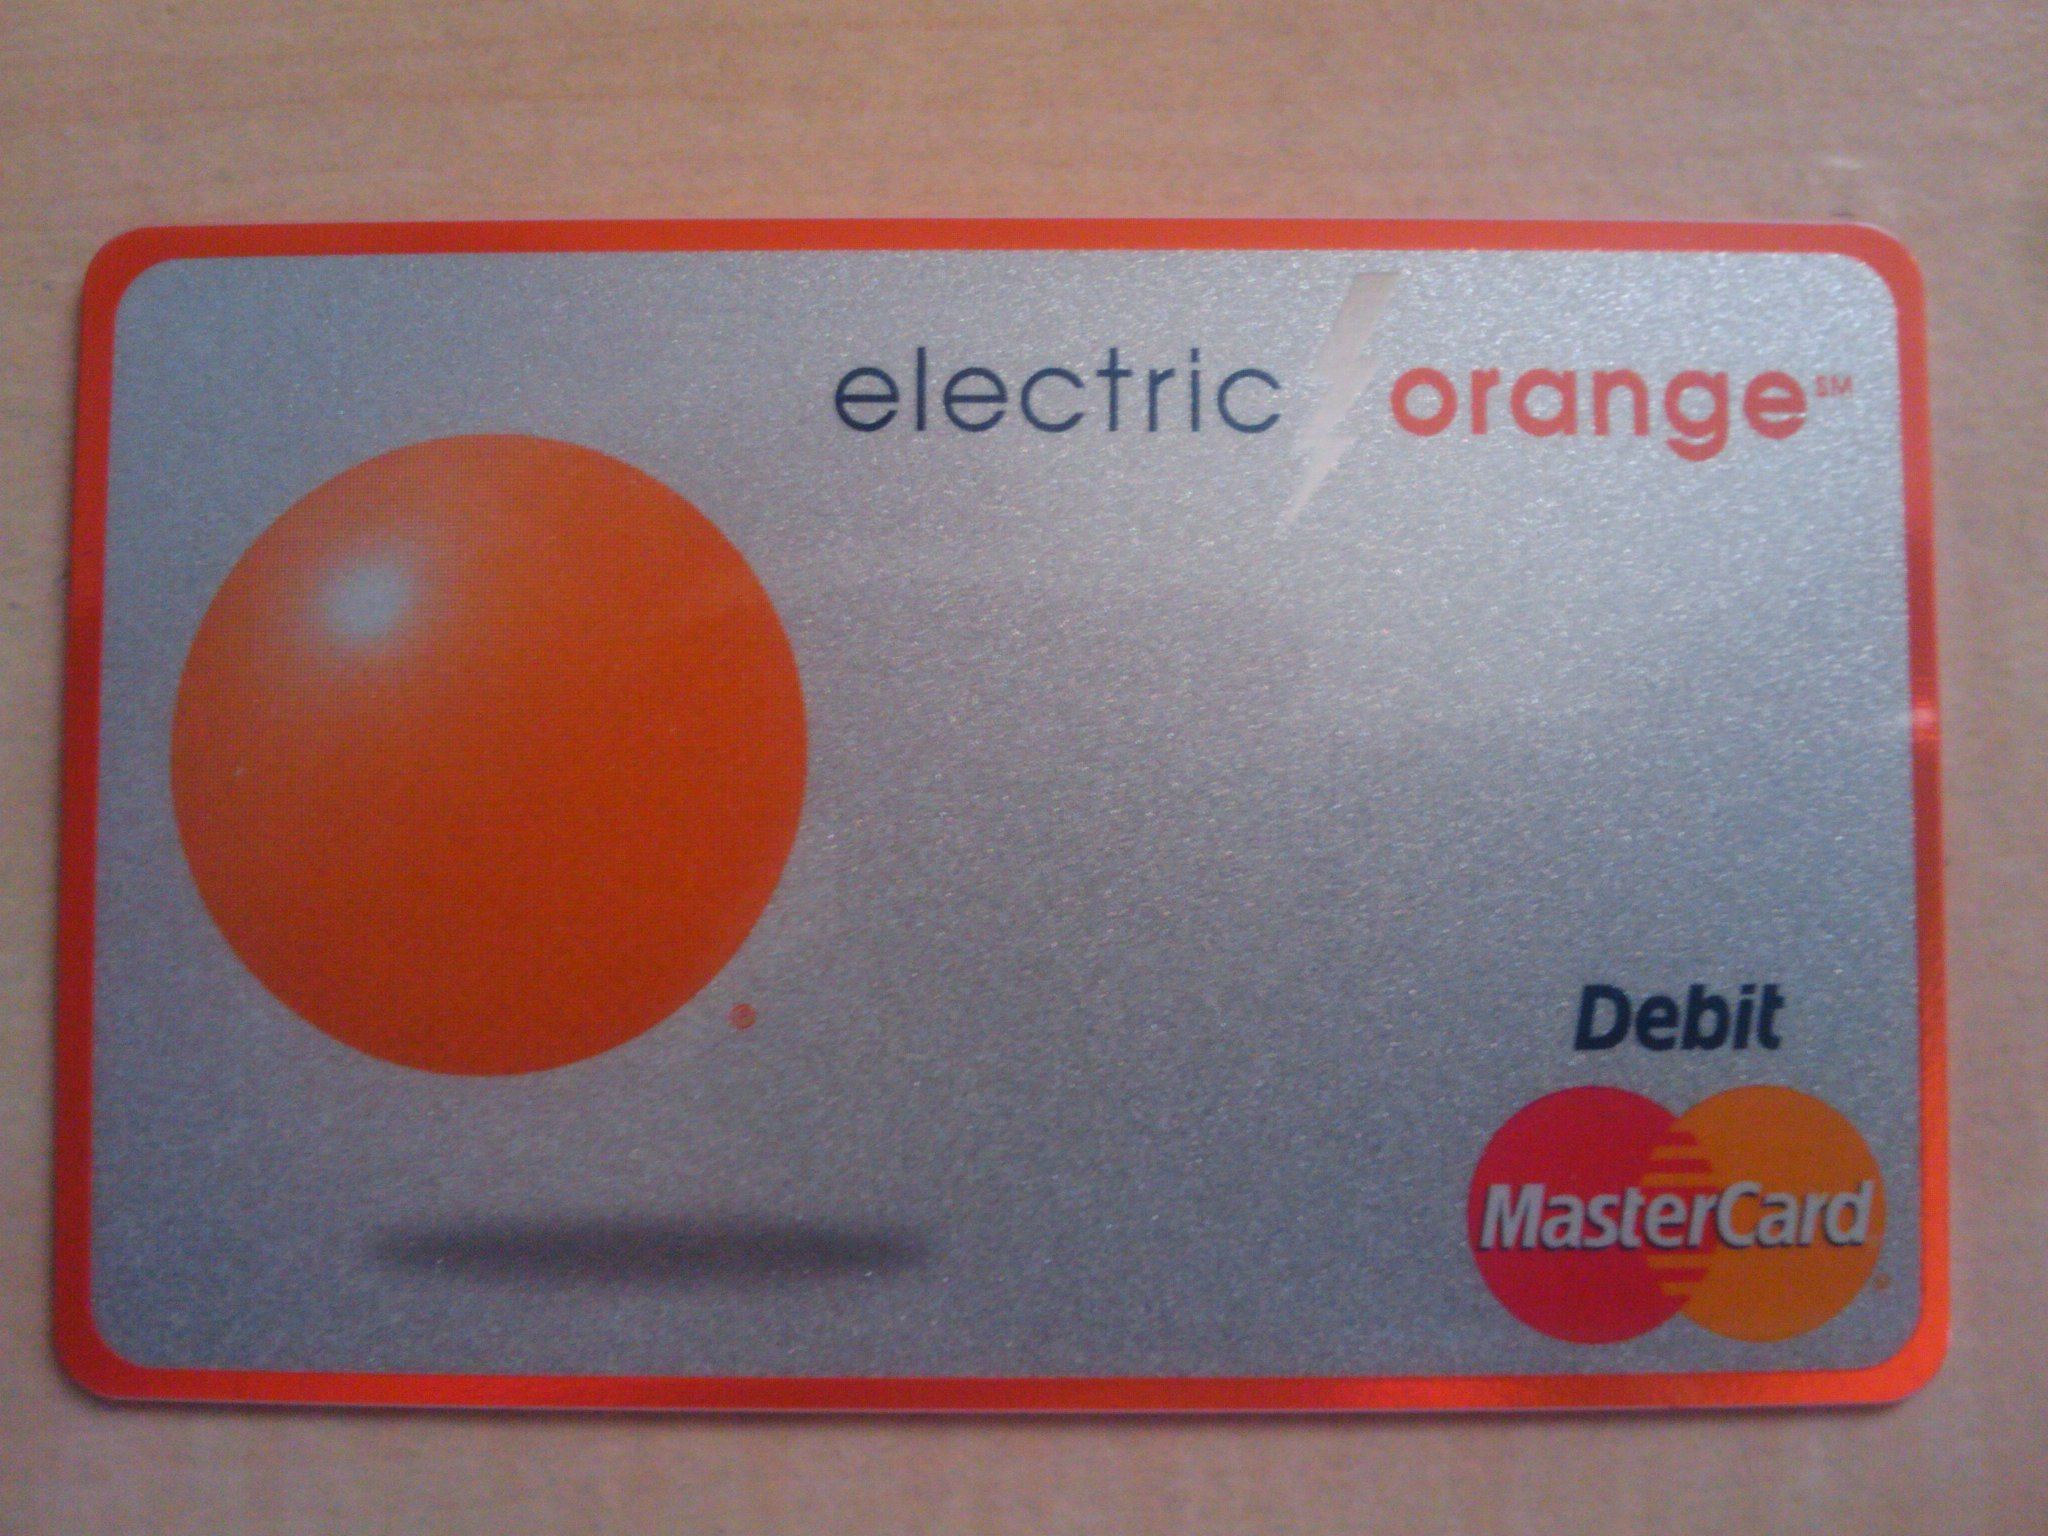 ING's New Debit Card For Electric Orange Checking Accounts